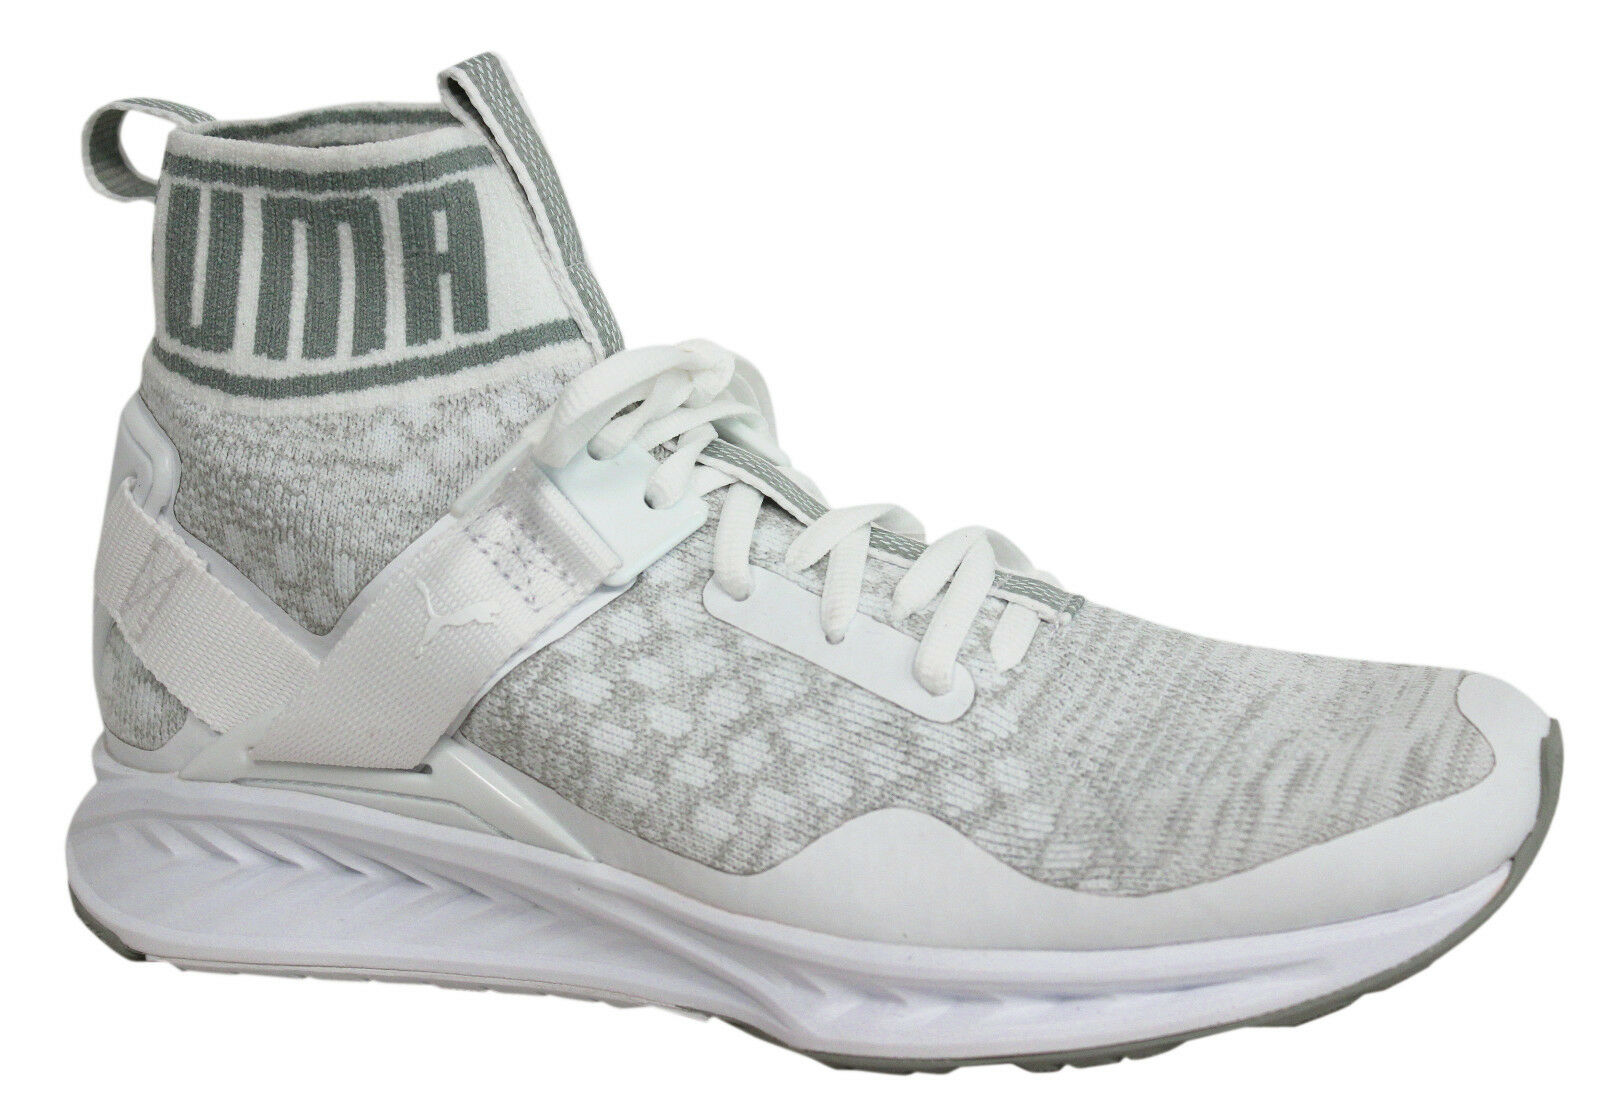 Puma Ignite evoKNIT Lace Up White Mens Mid Shoes Trainers 189697 03 D33 Brand discount